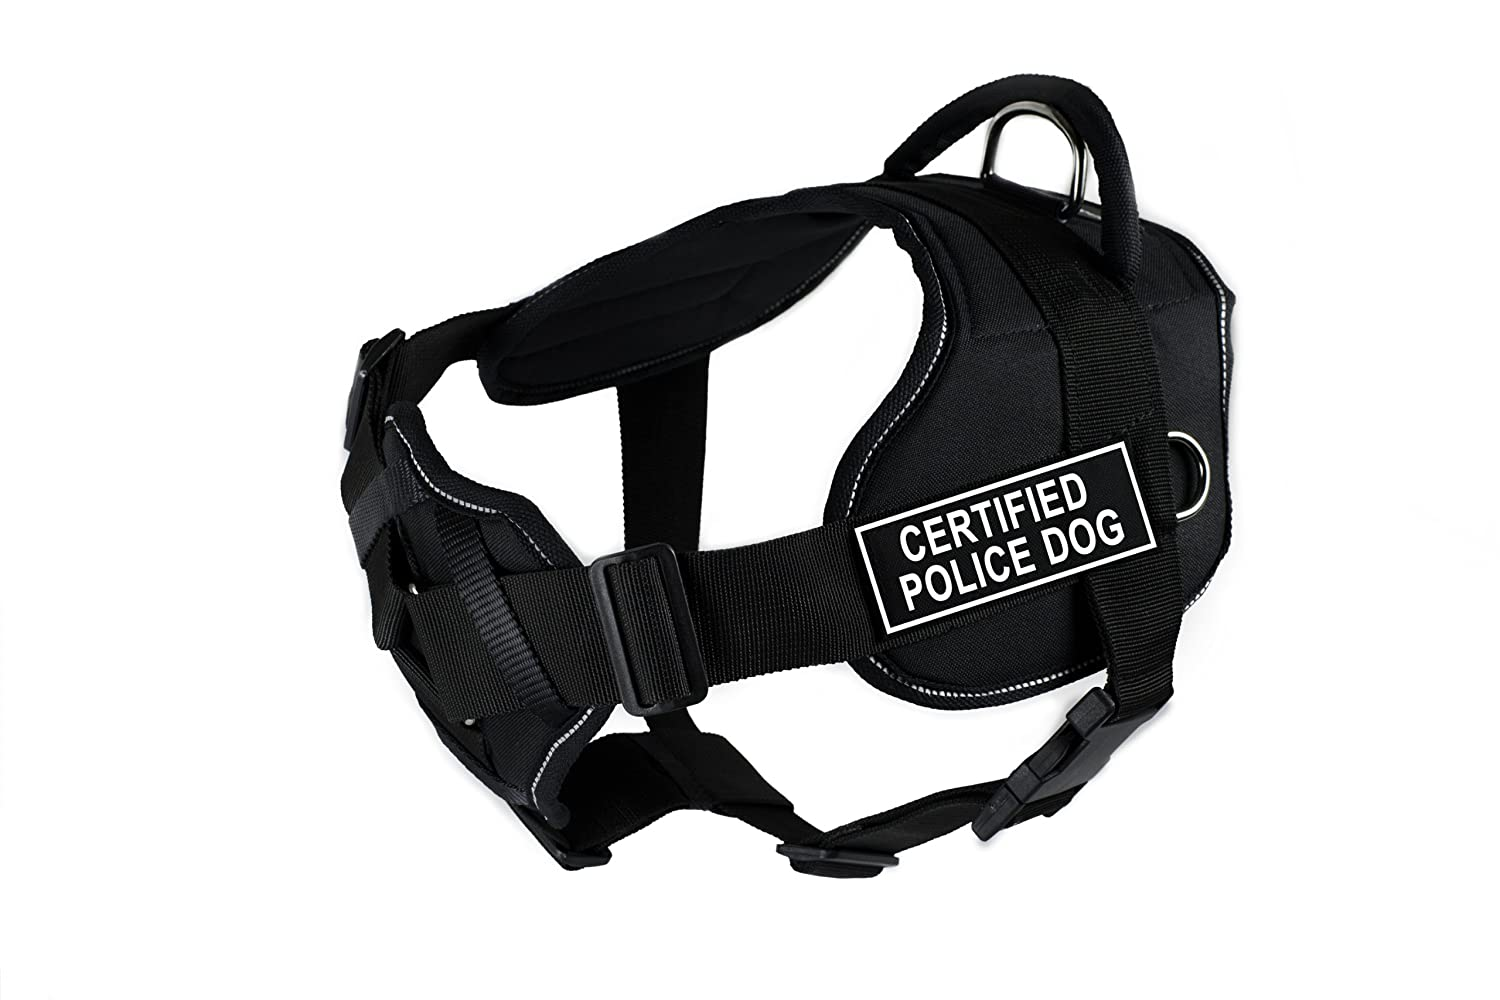 Dean & Tyler Fun Harness with Padded Chest Piece, Certified Police Dog, Medium, Black with Reflective Trim